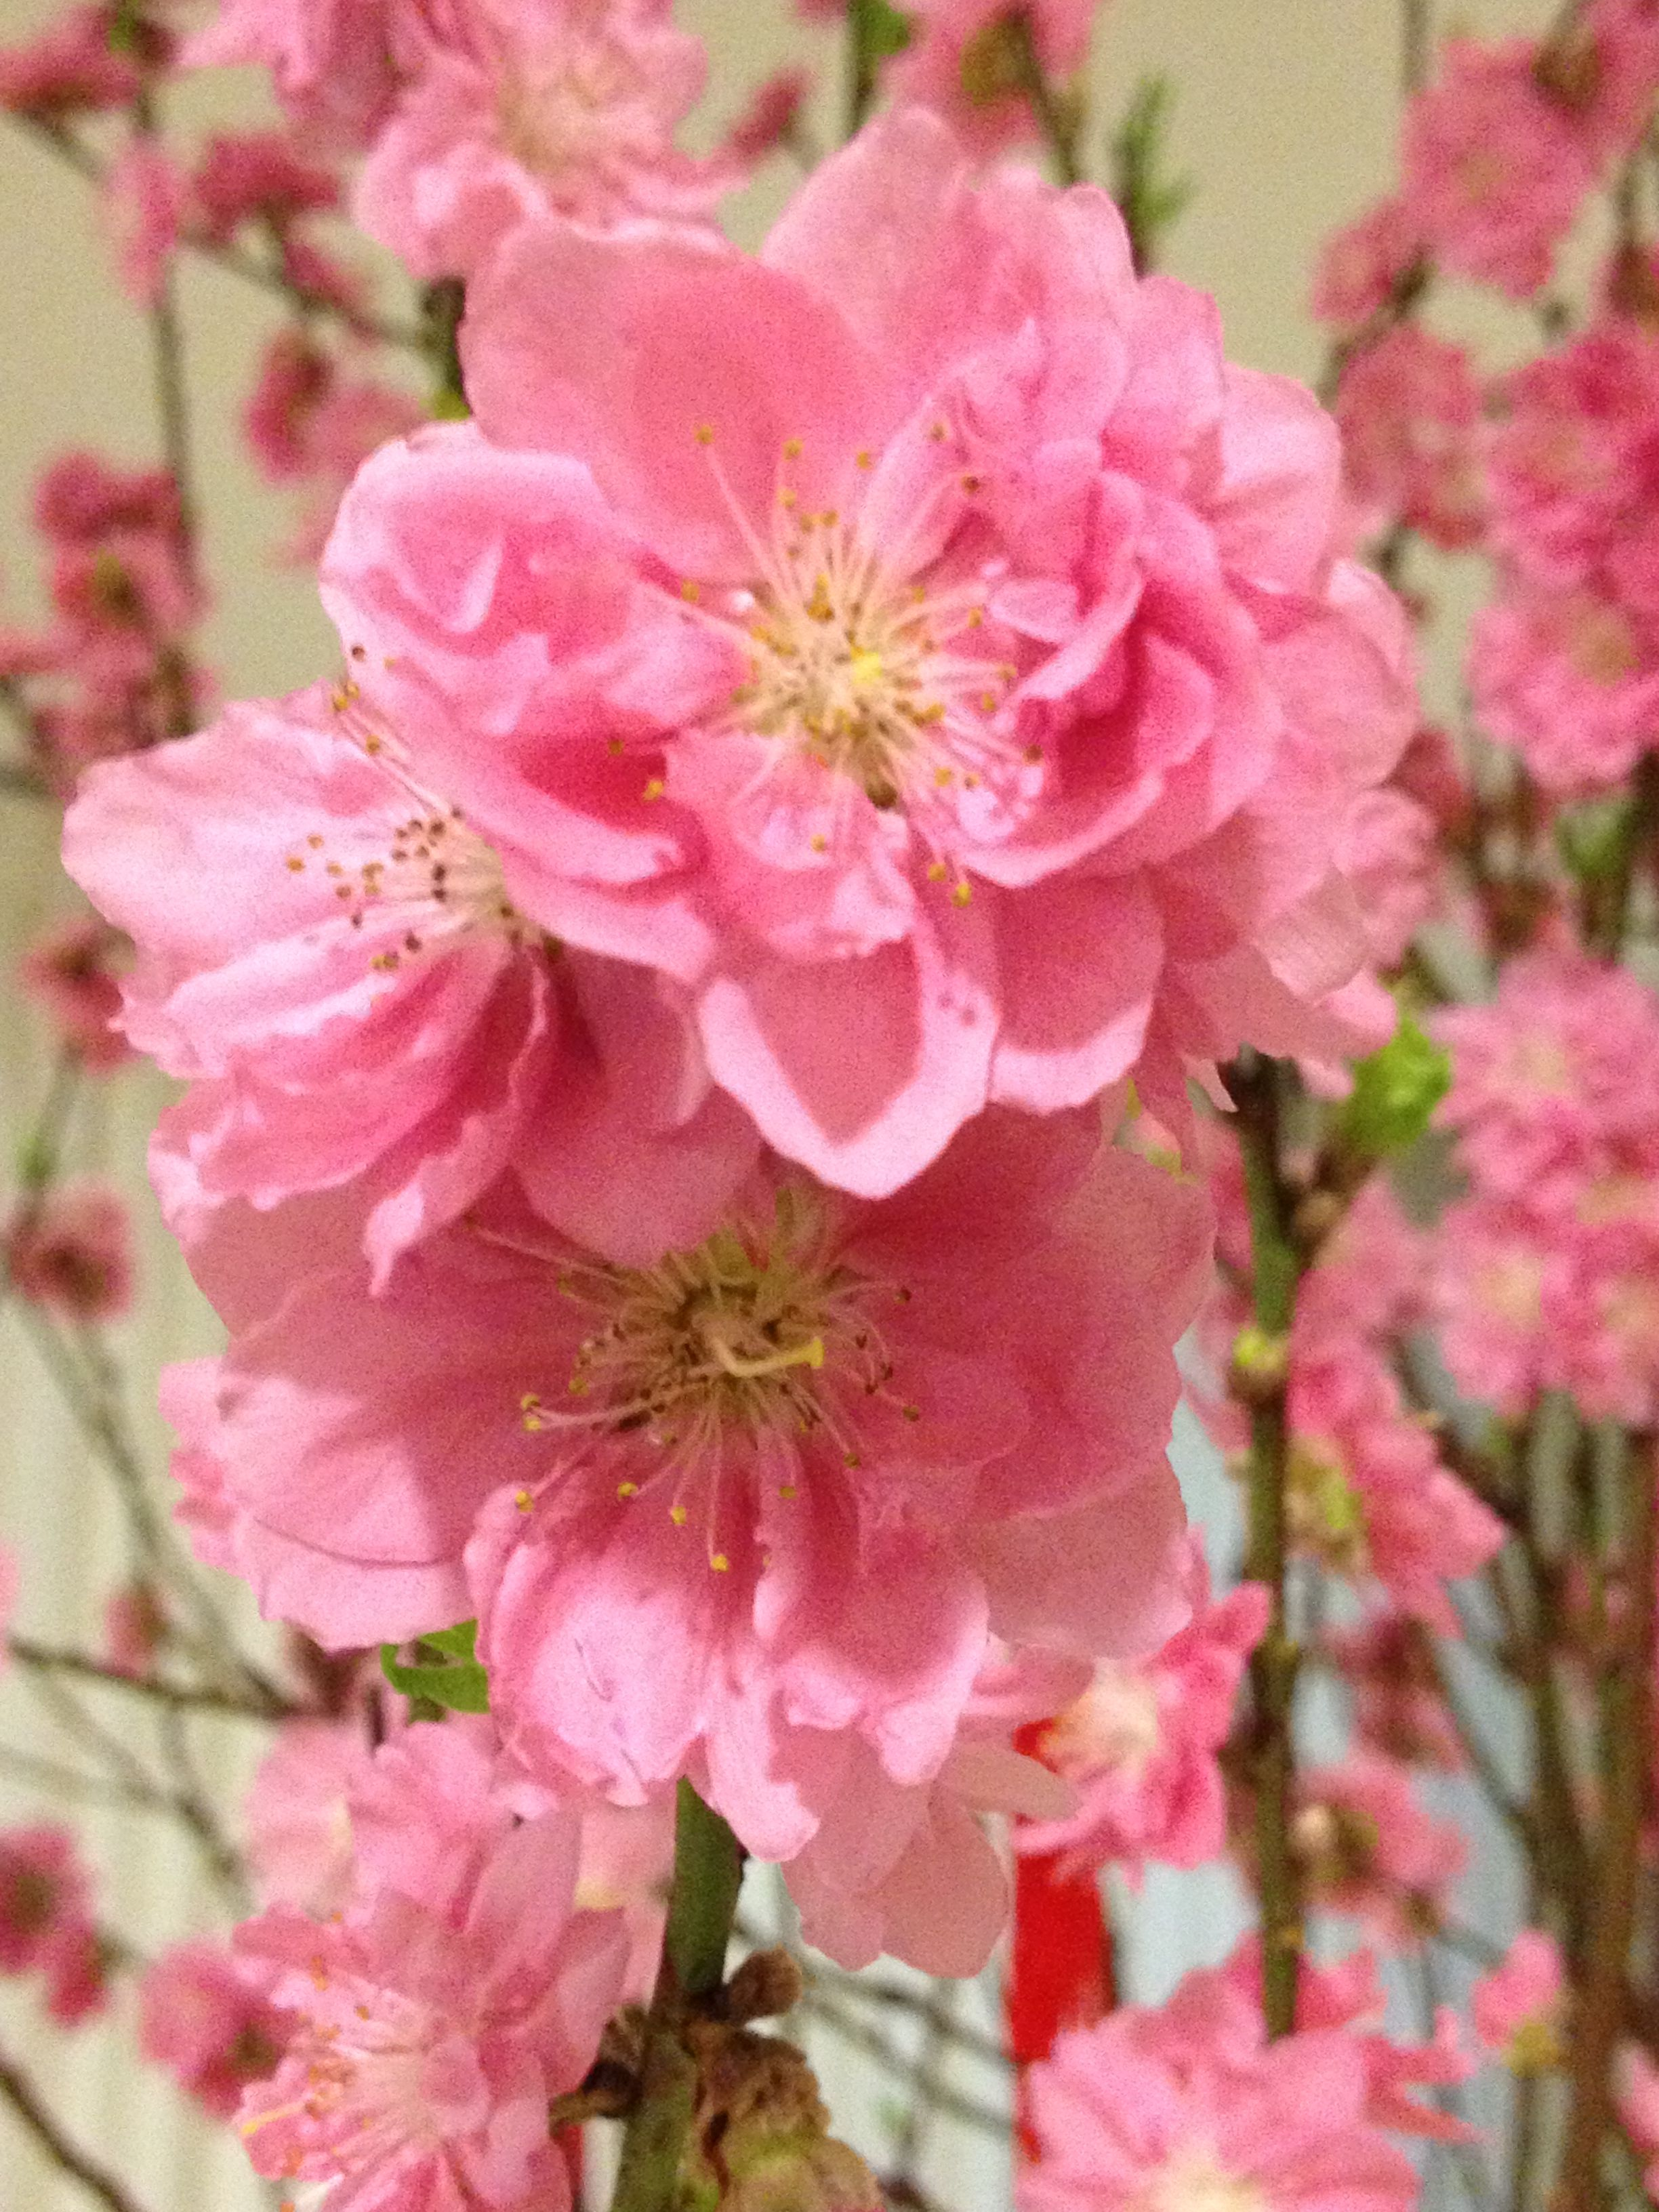 Pink Cherry Blossoms Mean Their Arrival At Festivals Throughout The Country Other Cultures Such As The Japanese Believe Cherry Blossoms Represent Beaut Krasota